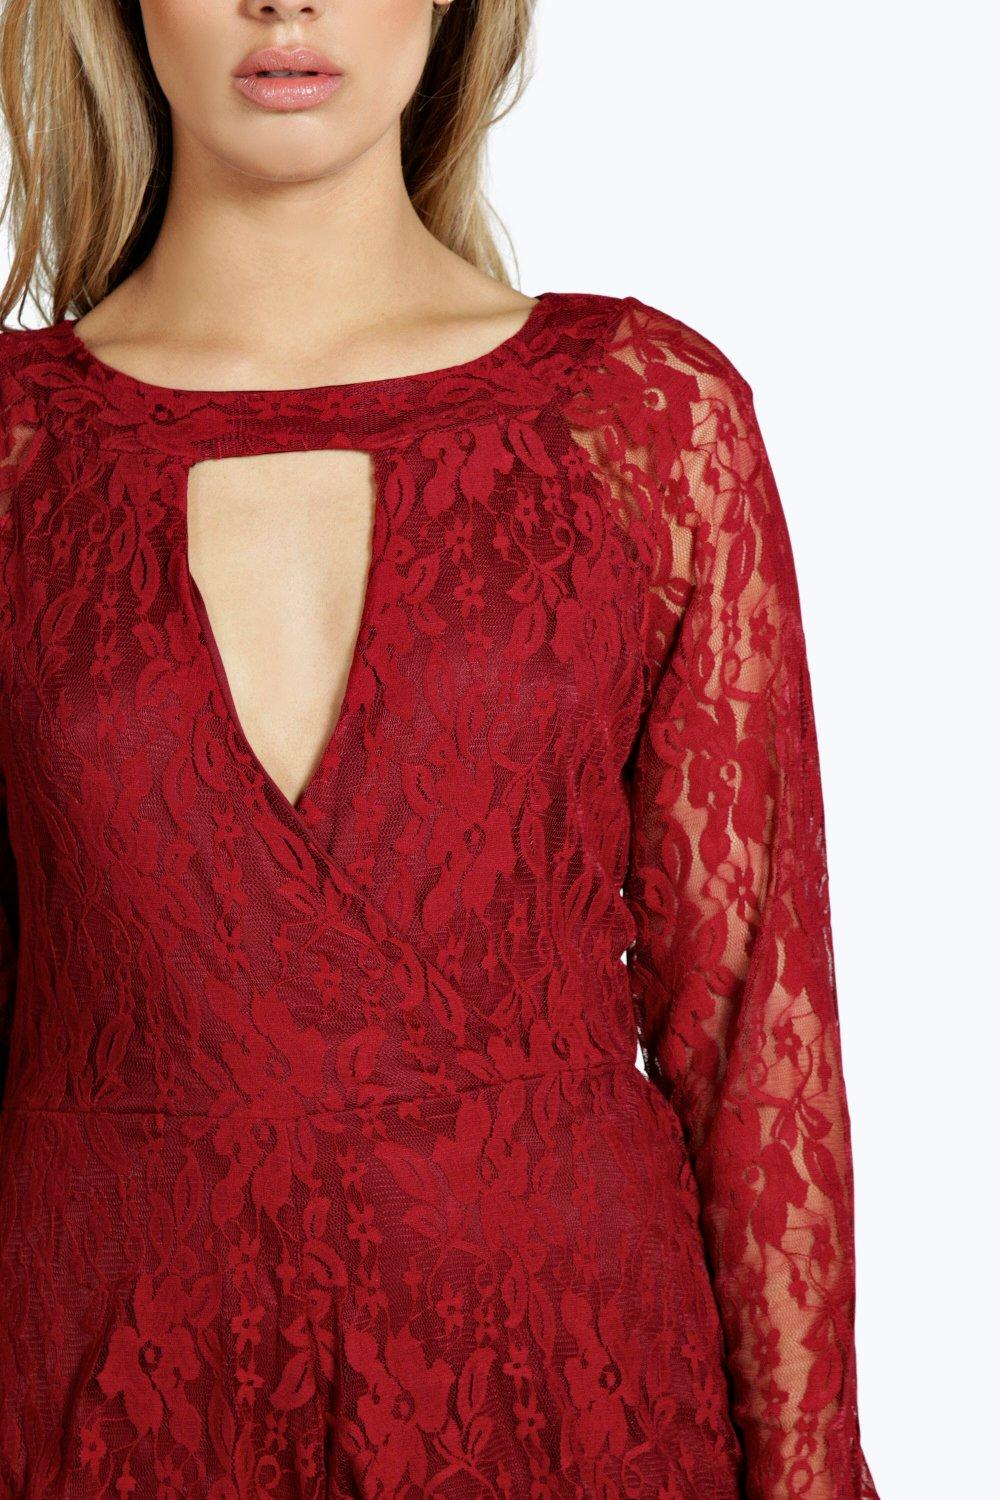 Playsuit Front Lace wine Plus Wrap tUqF1wZT